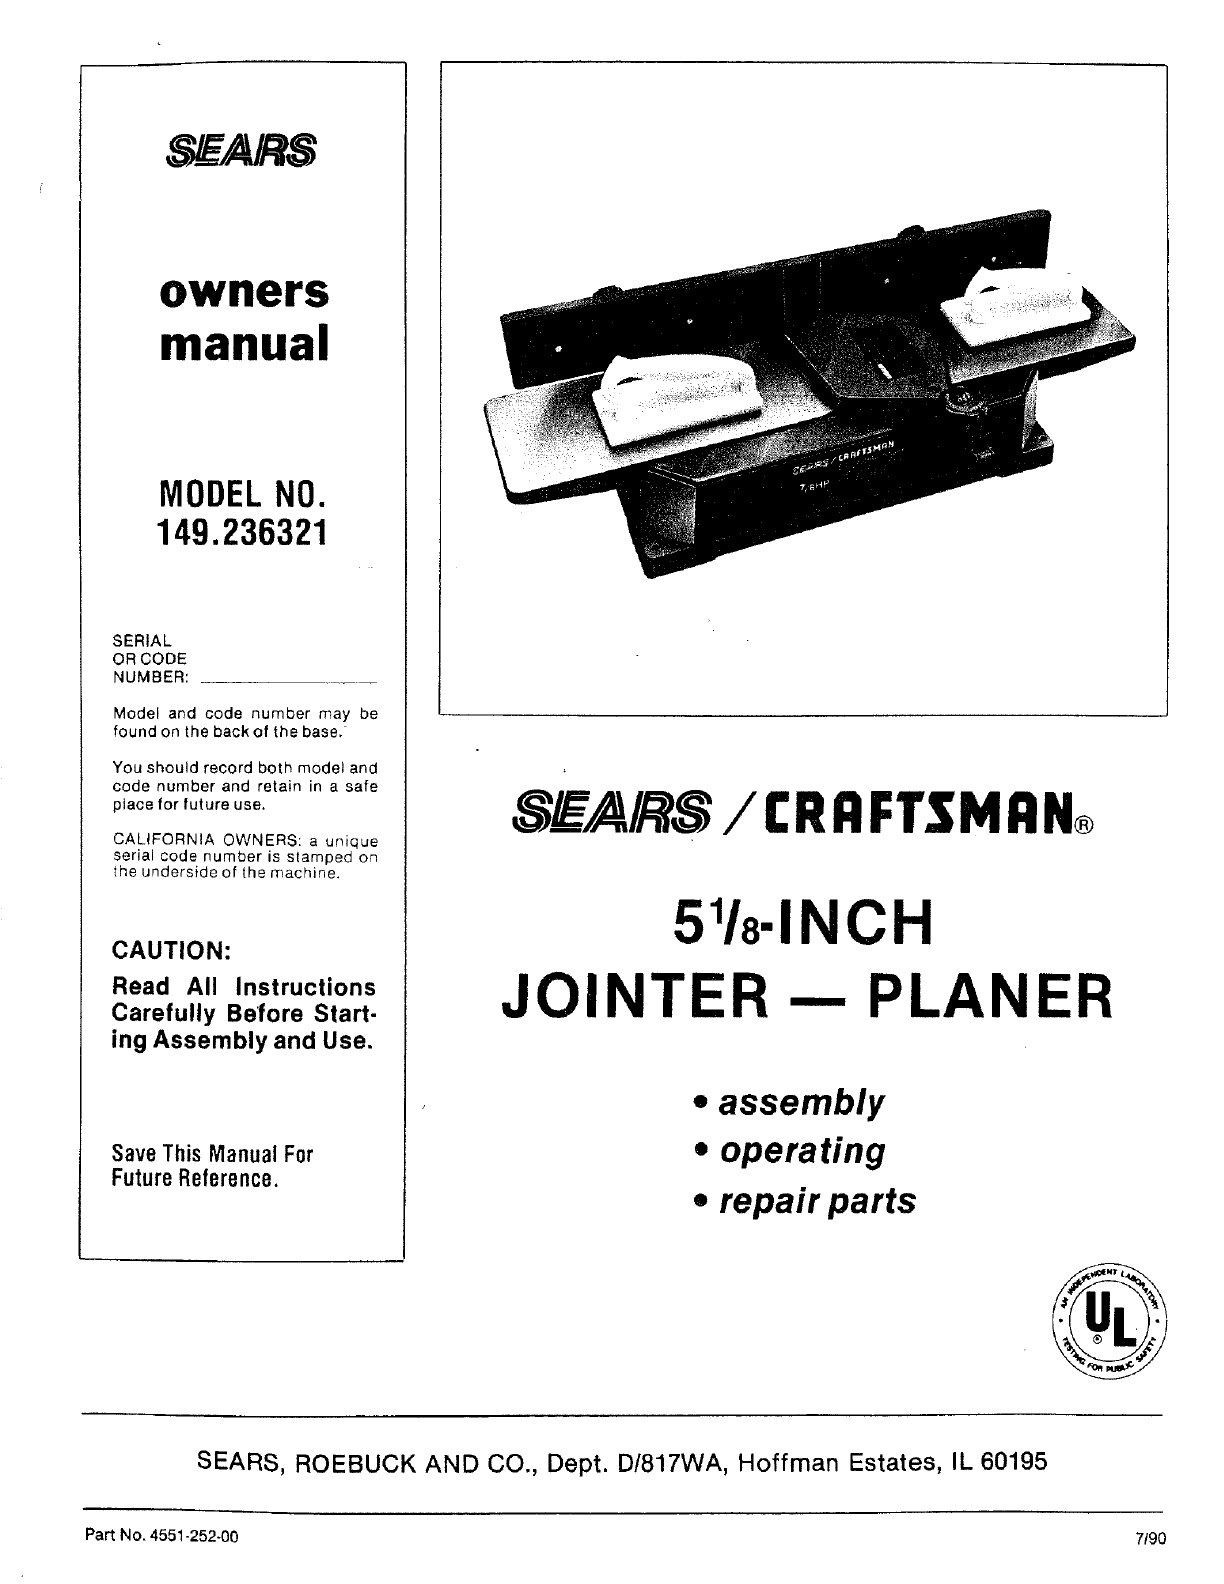 sears user manual various owner manual guide u2022 rh justk co Sears Craftsman ManualsOnline Craftsman Instruction Manual